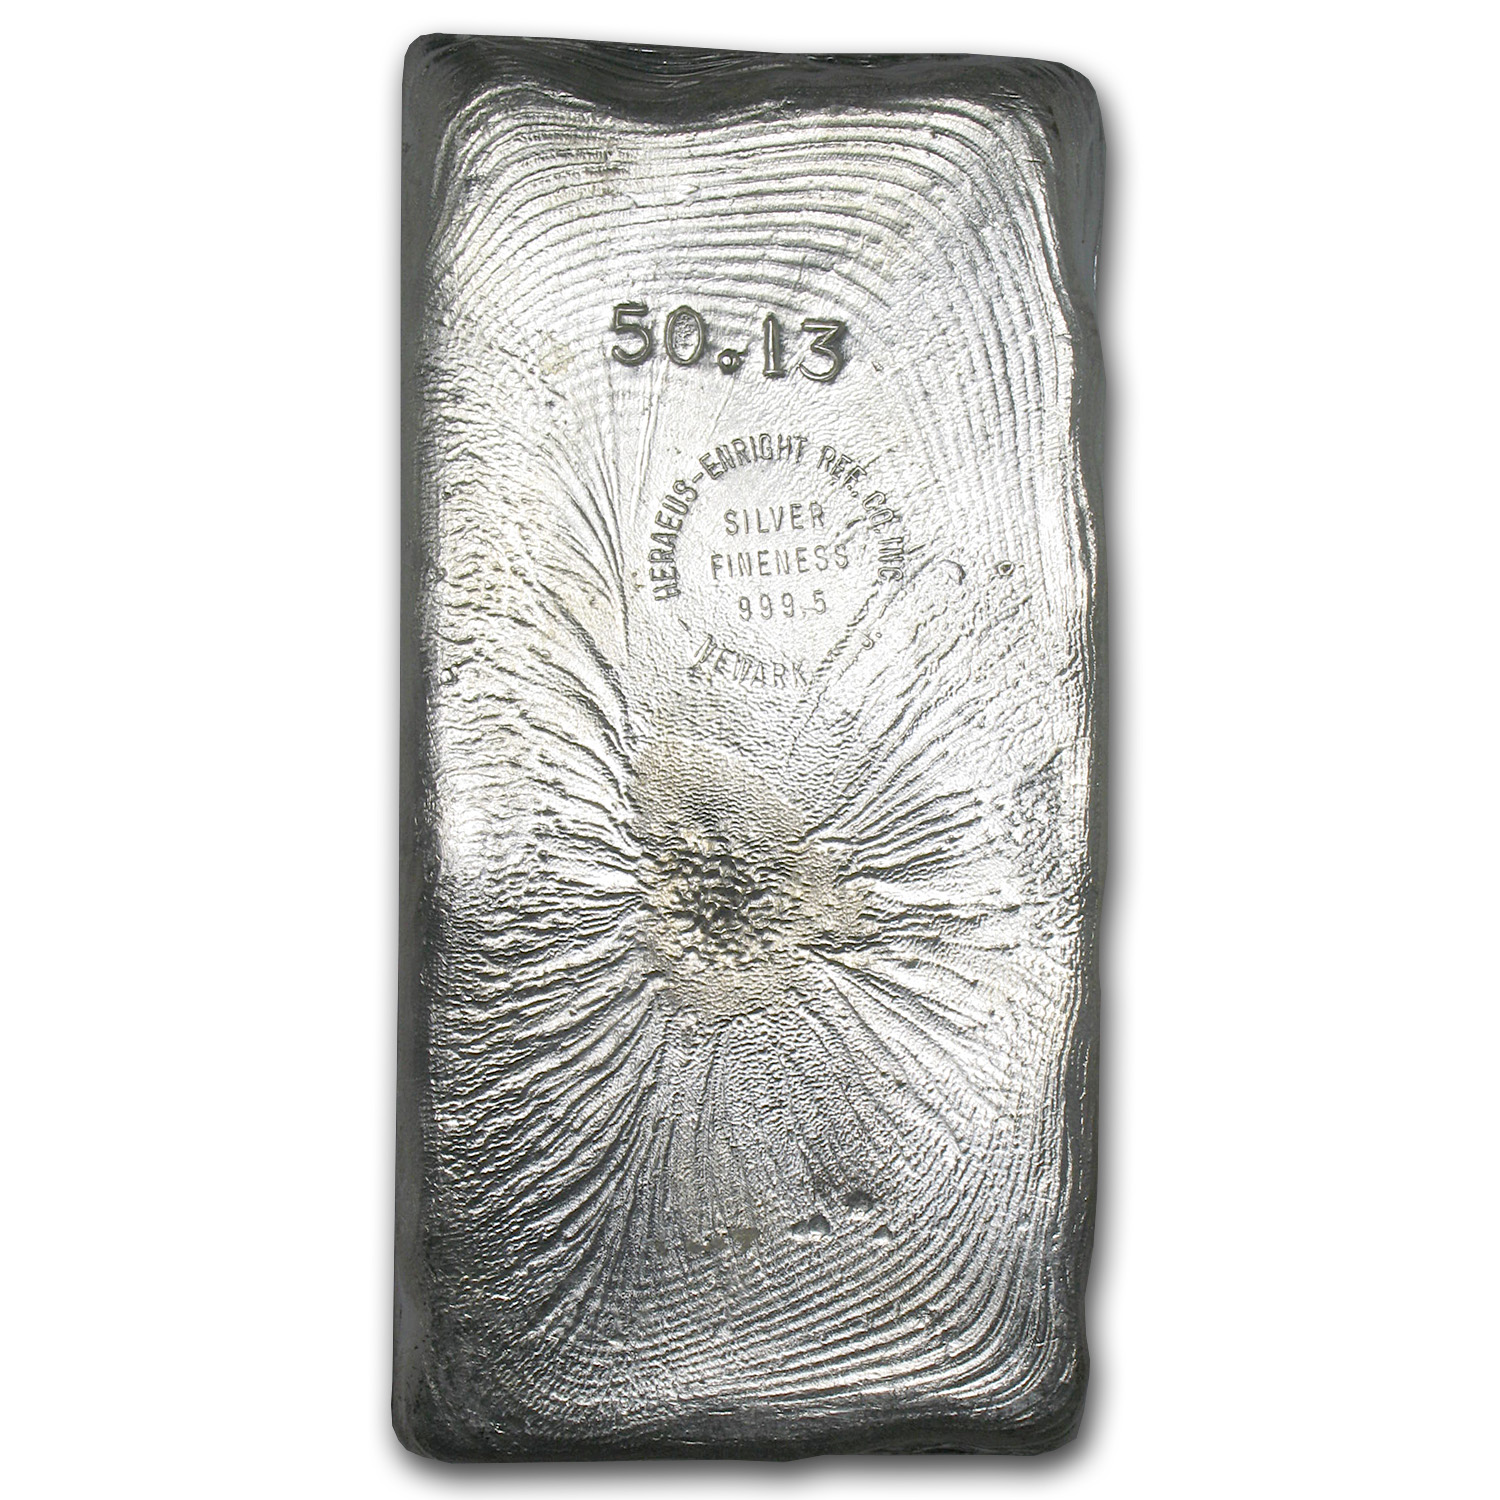 50.13 oz Silver Bar - Heraeus (Poured)